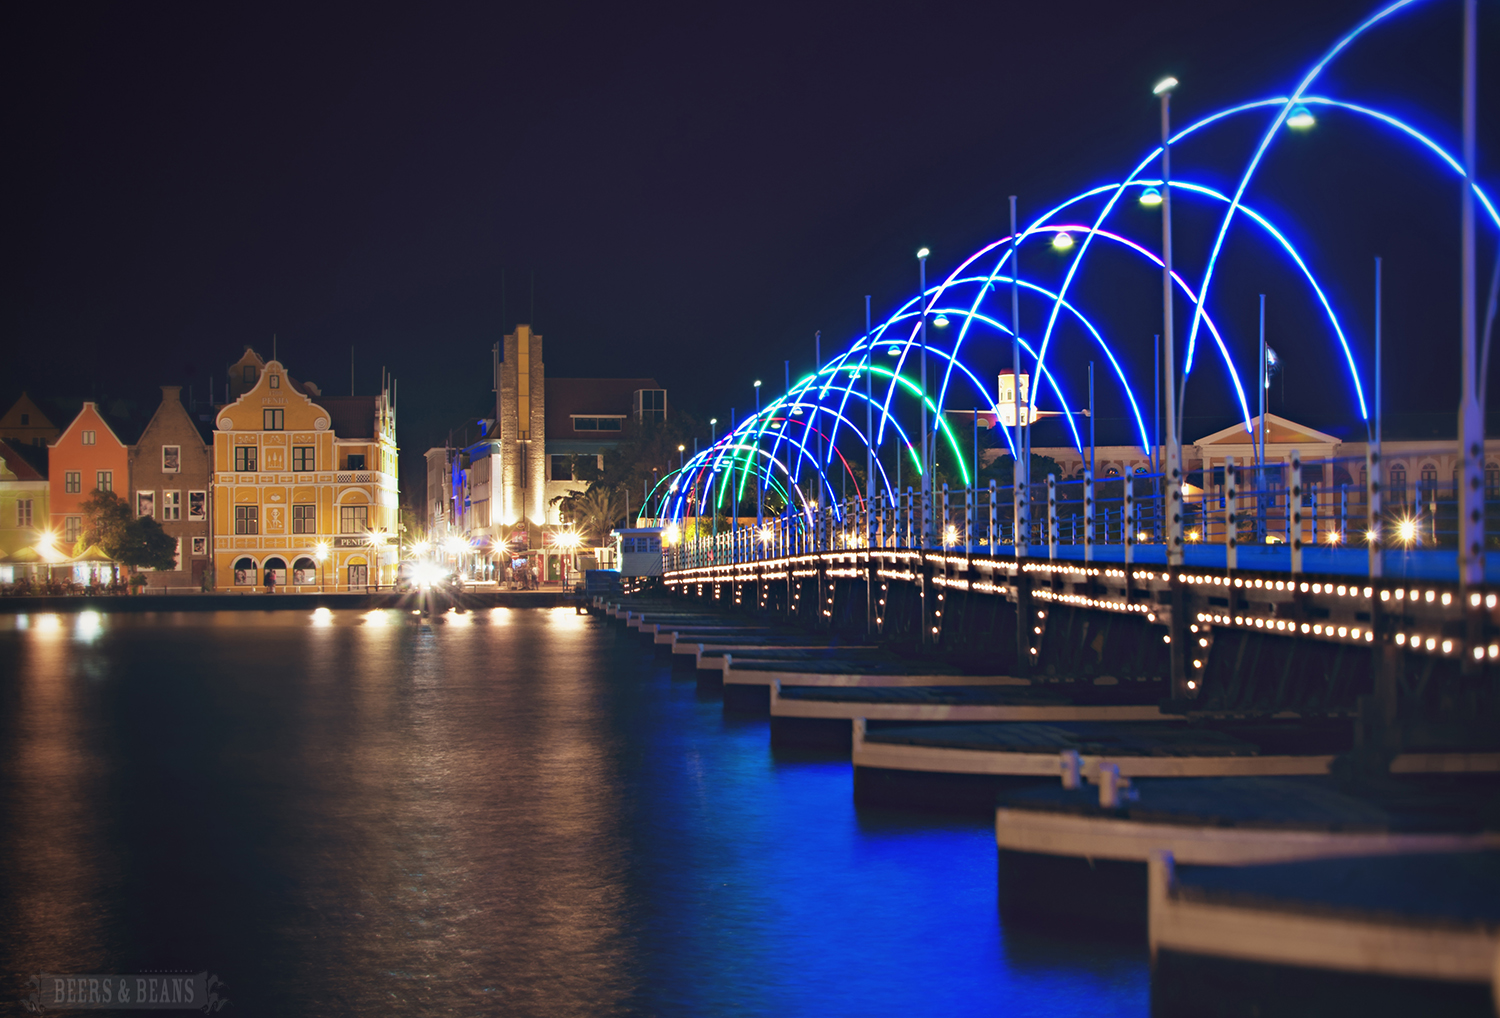 A bridge with colorful lights in Curacao.